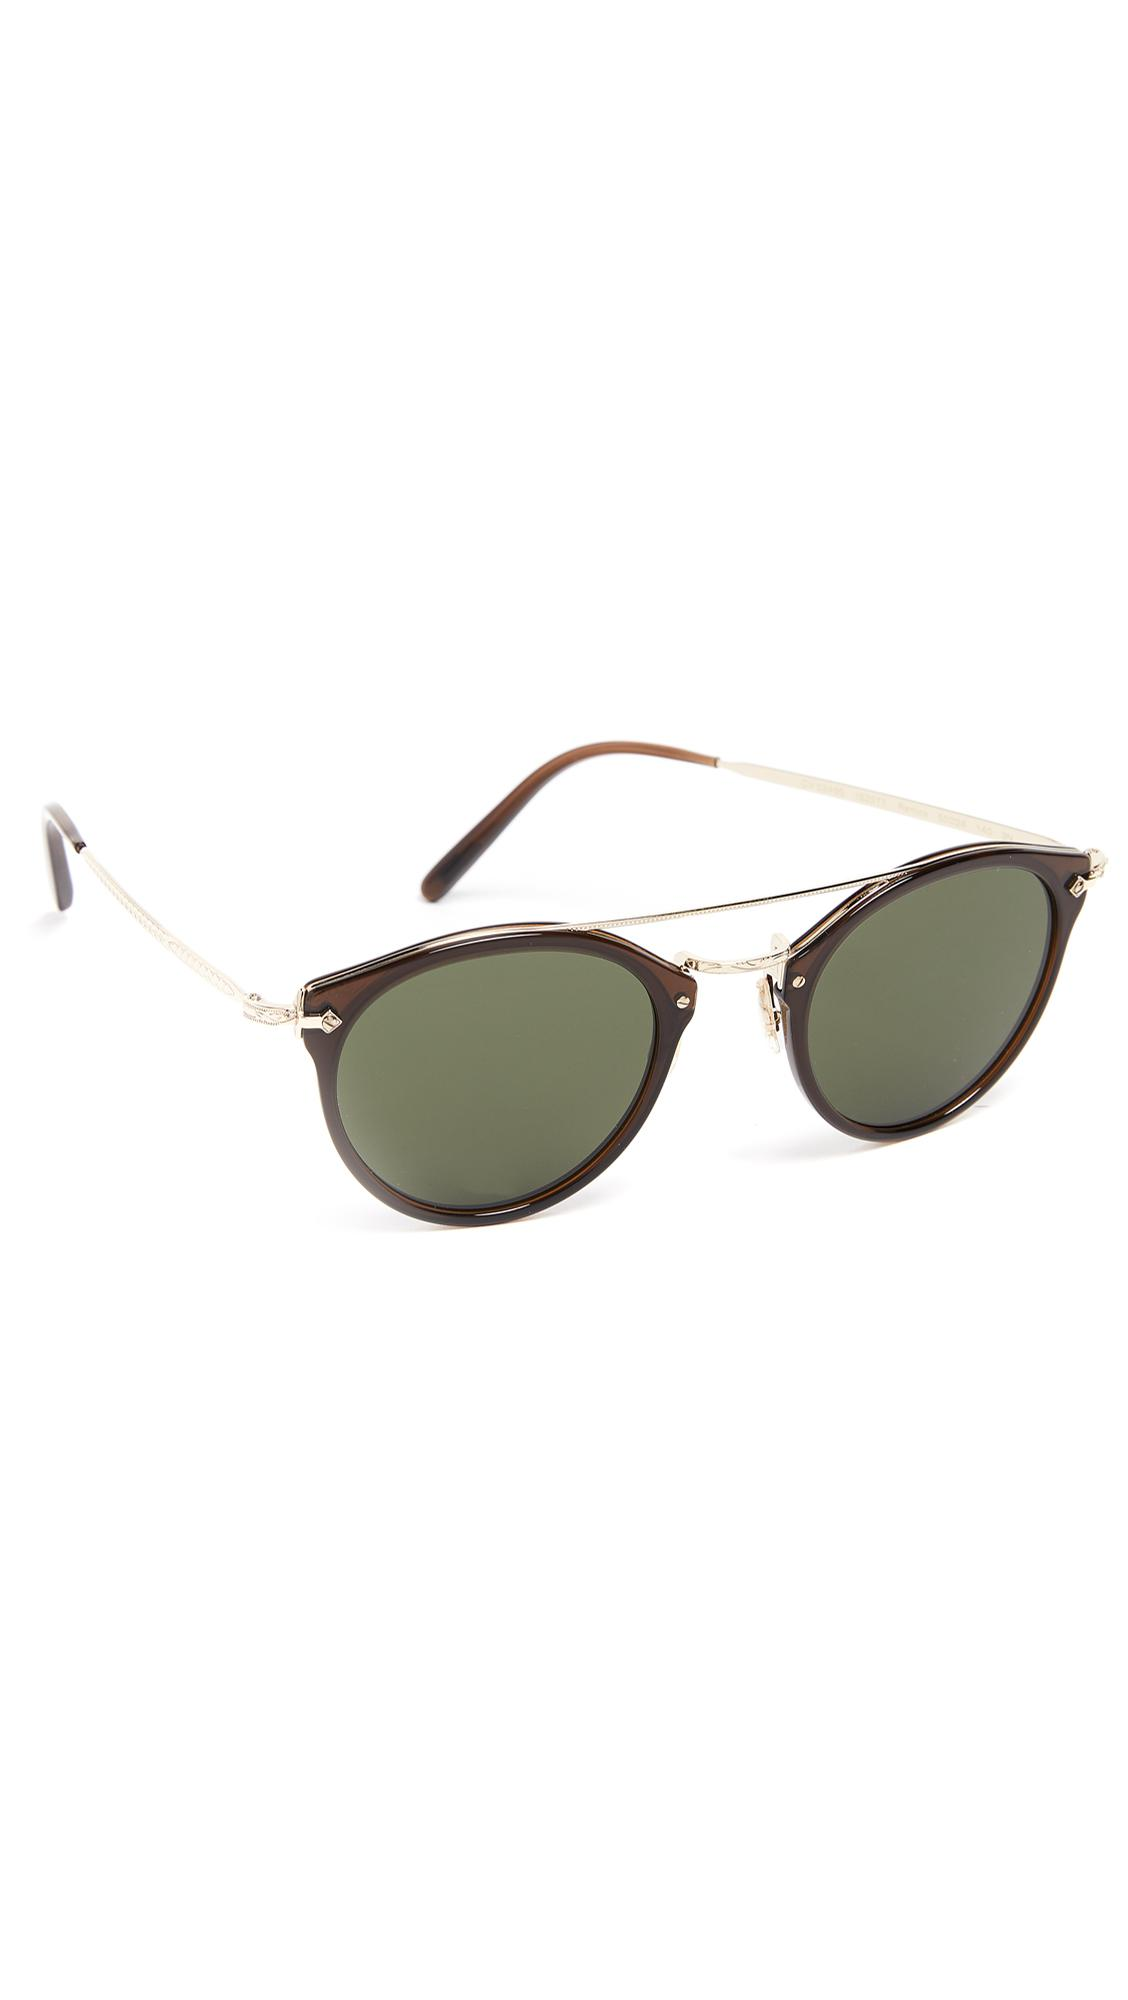 f2ddf78218 Lyst - Oliver Peoples Remick Sunglasses in Green for Men